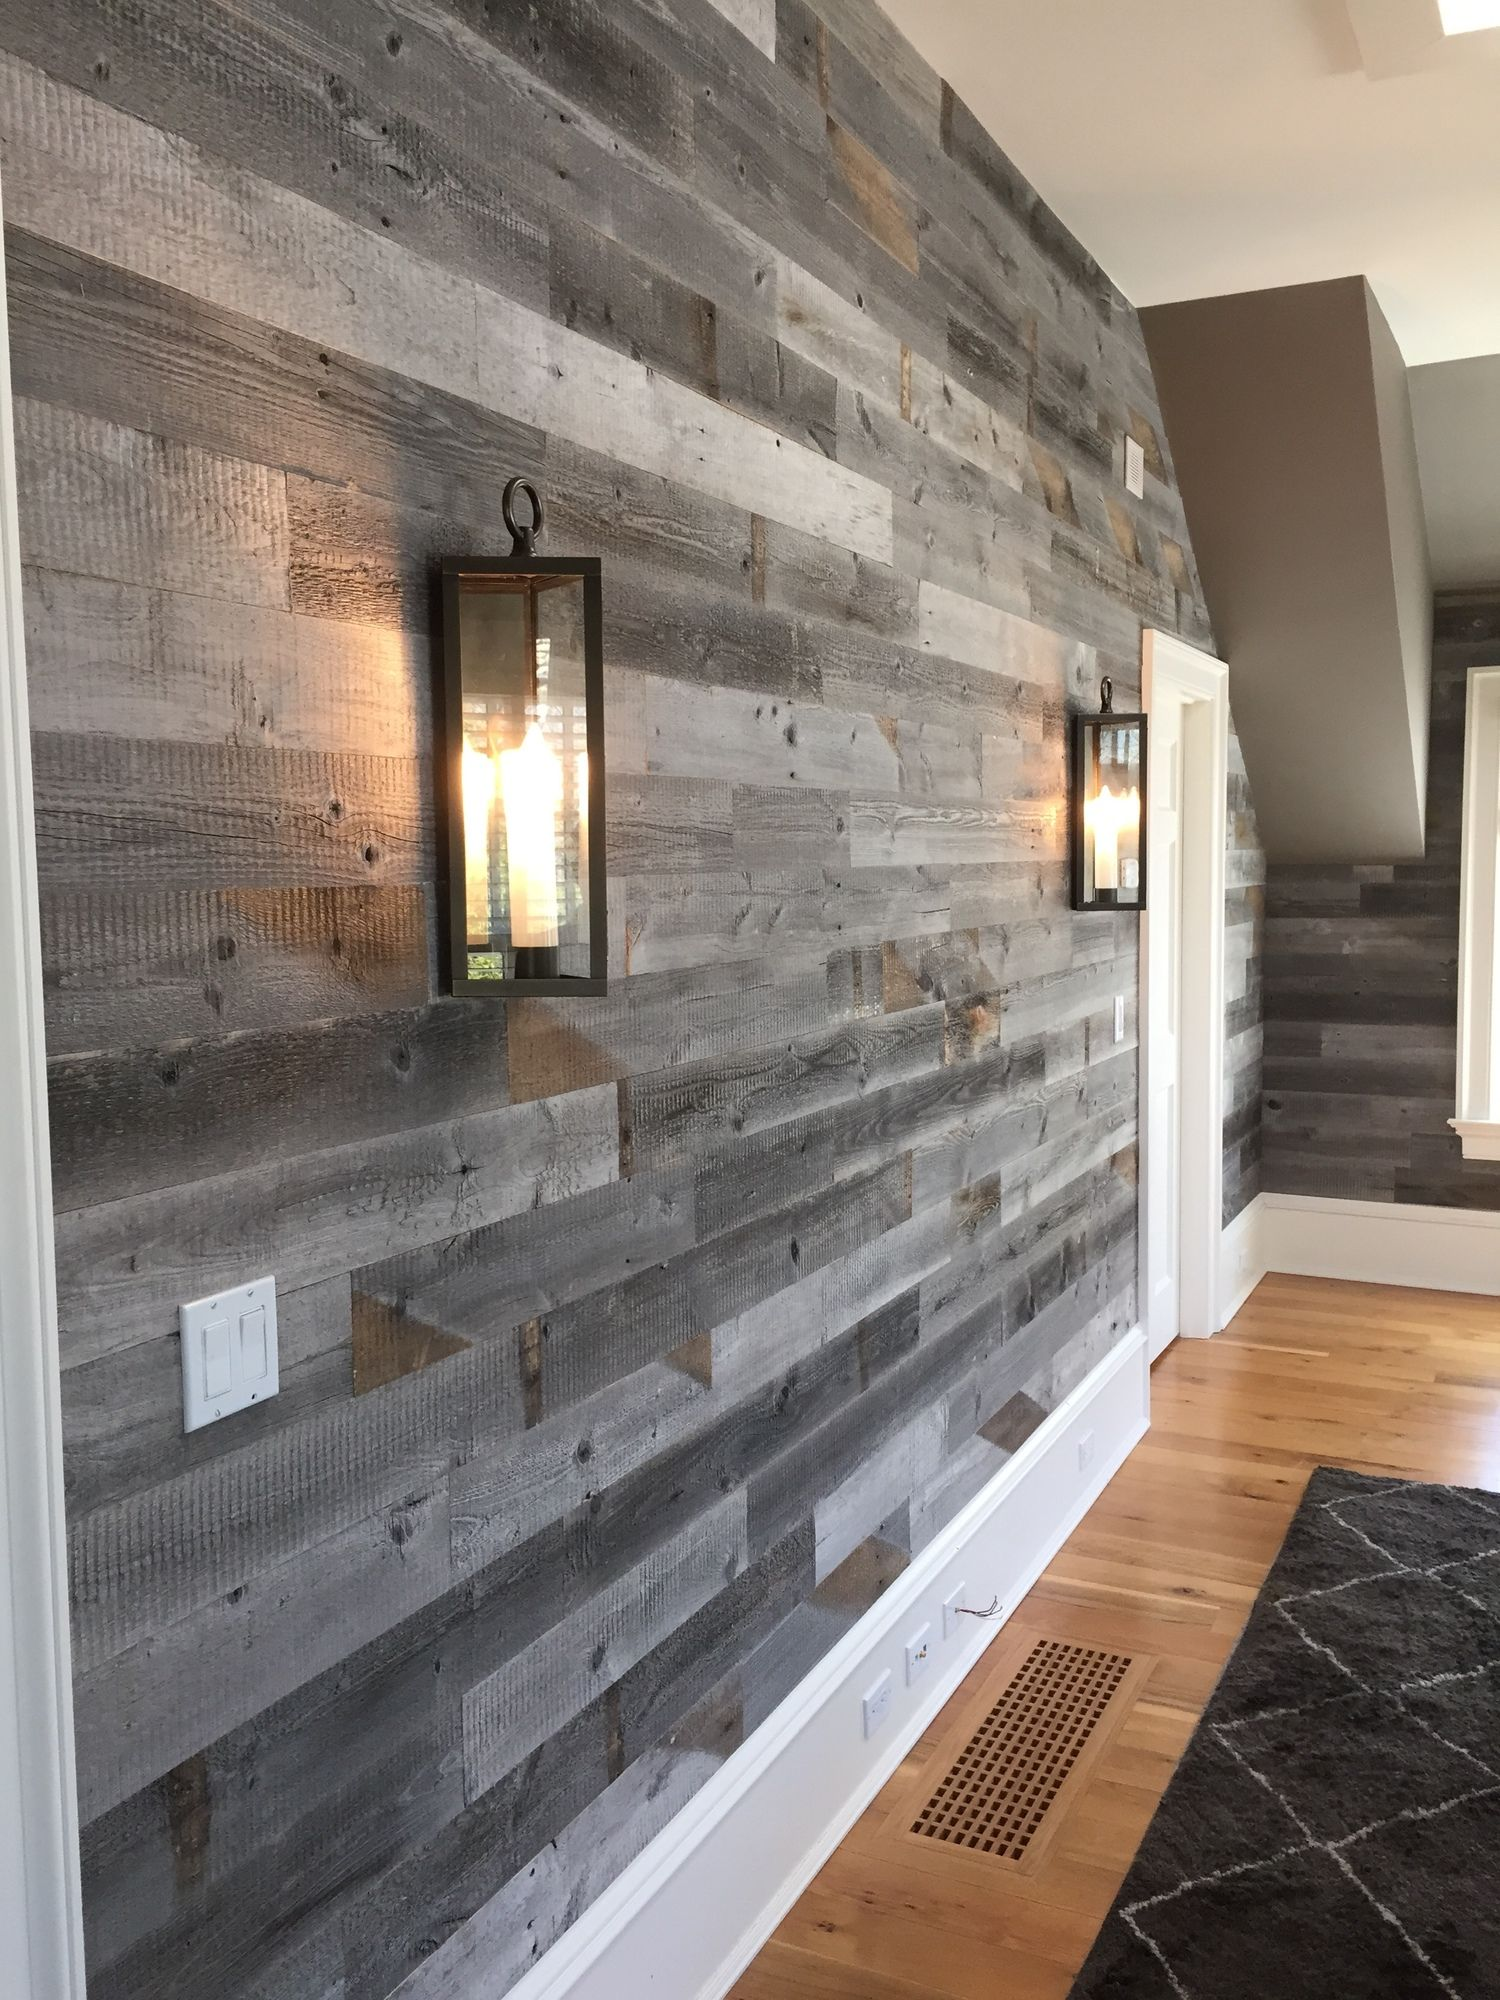 Reclaimed Weathered Wood in 2018